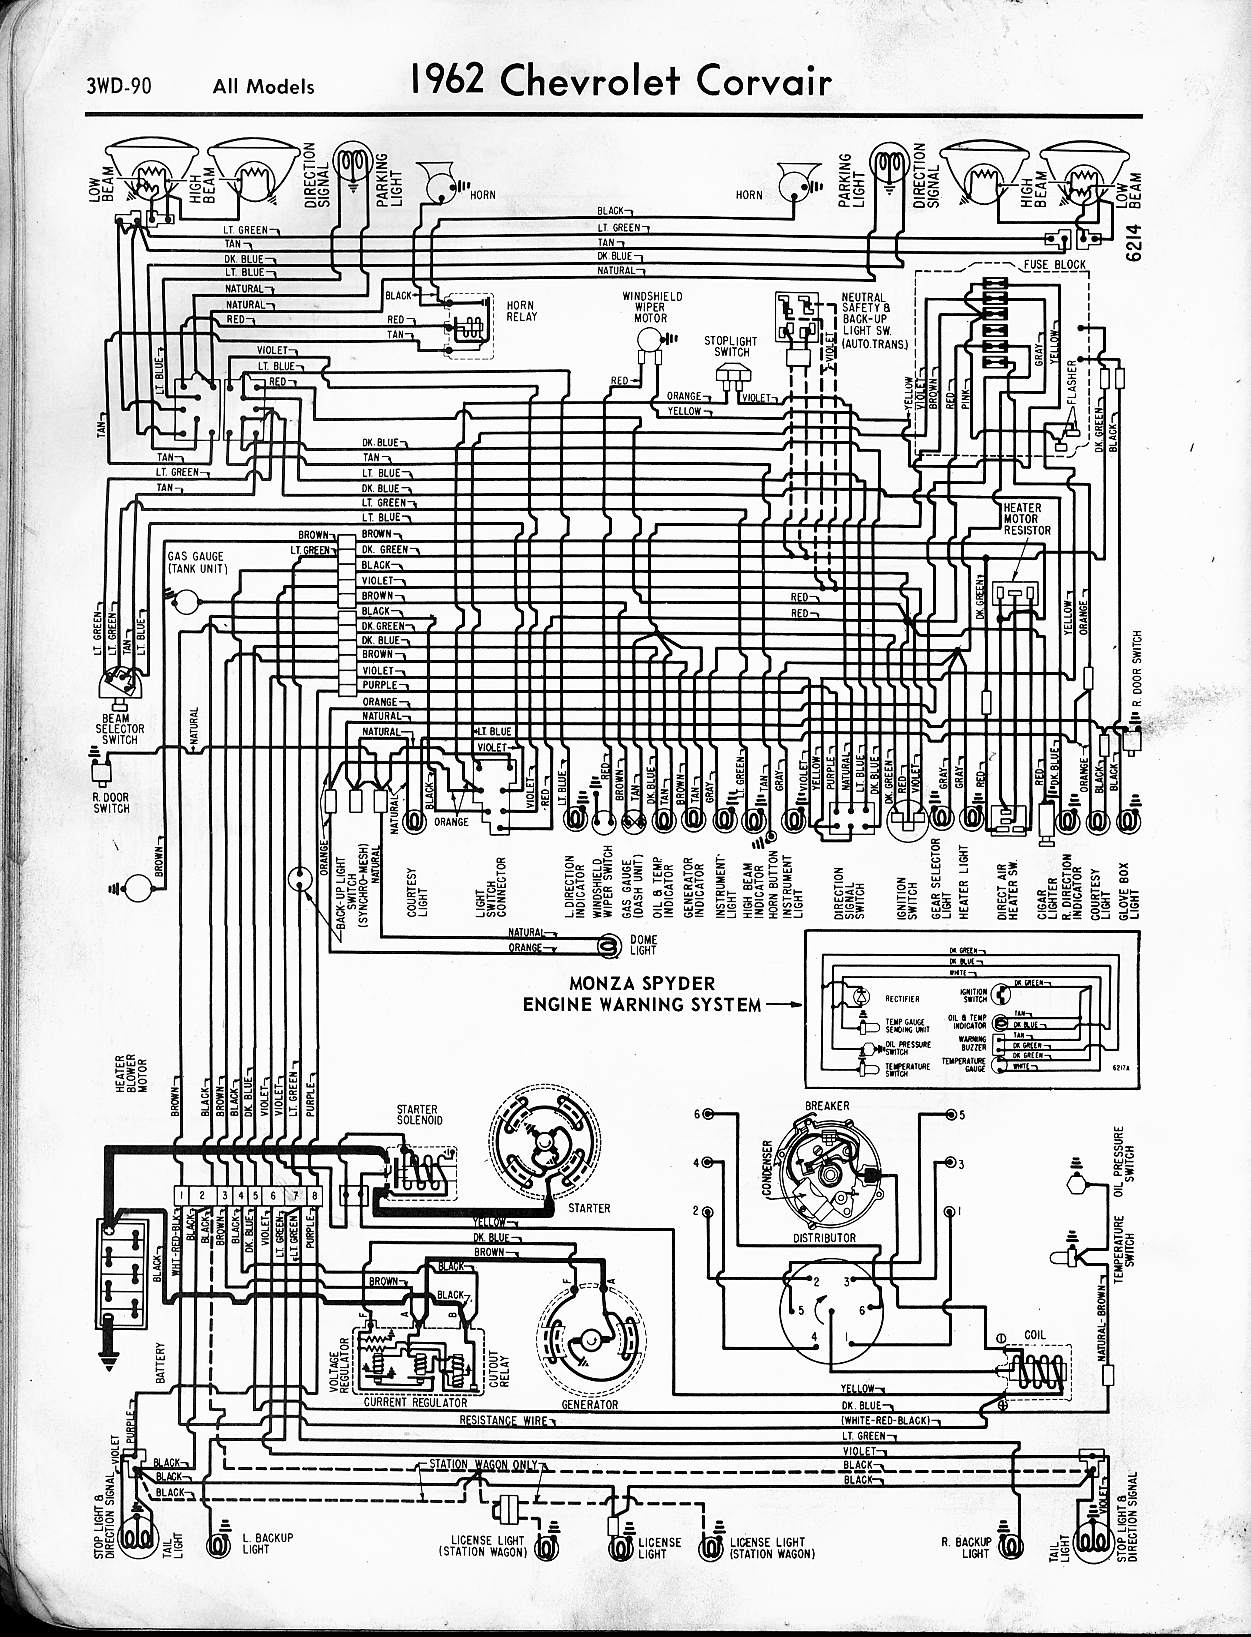 62 Corvette Wiring Diagram Starting Know About Chevy Another Blog U2022 Rh Ok2 Infoservice Ru